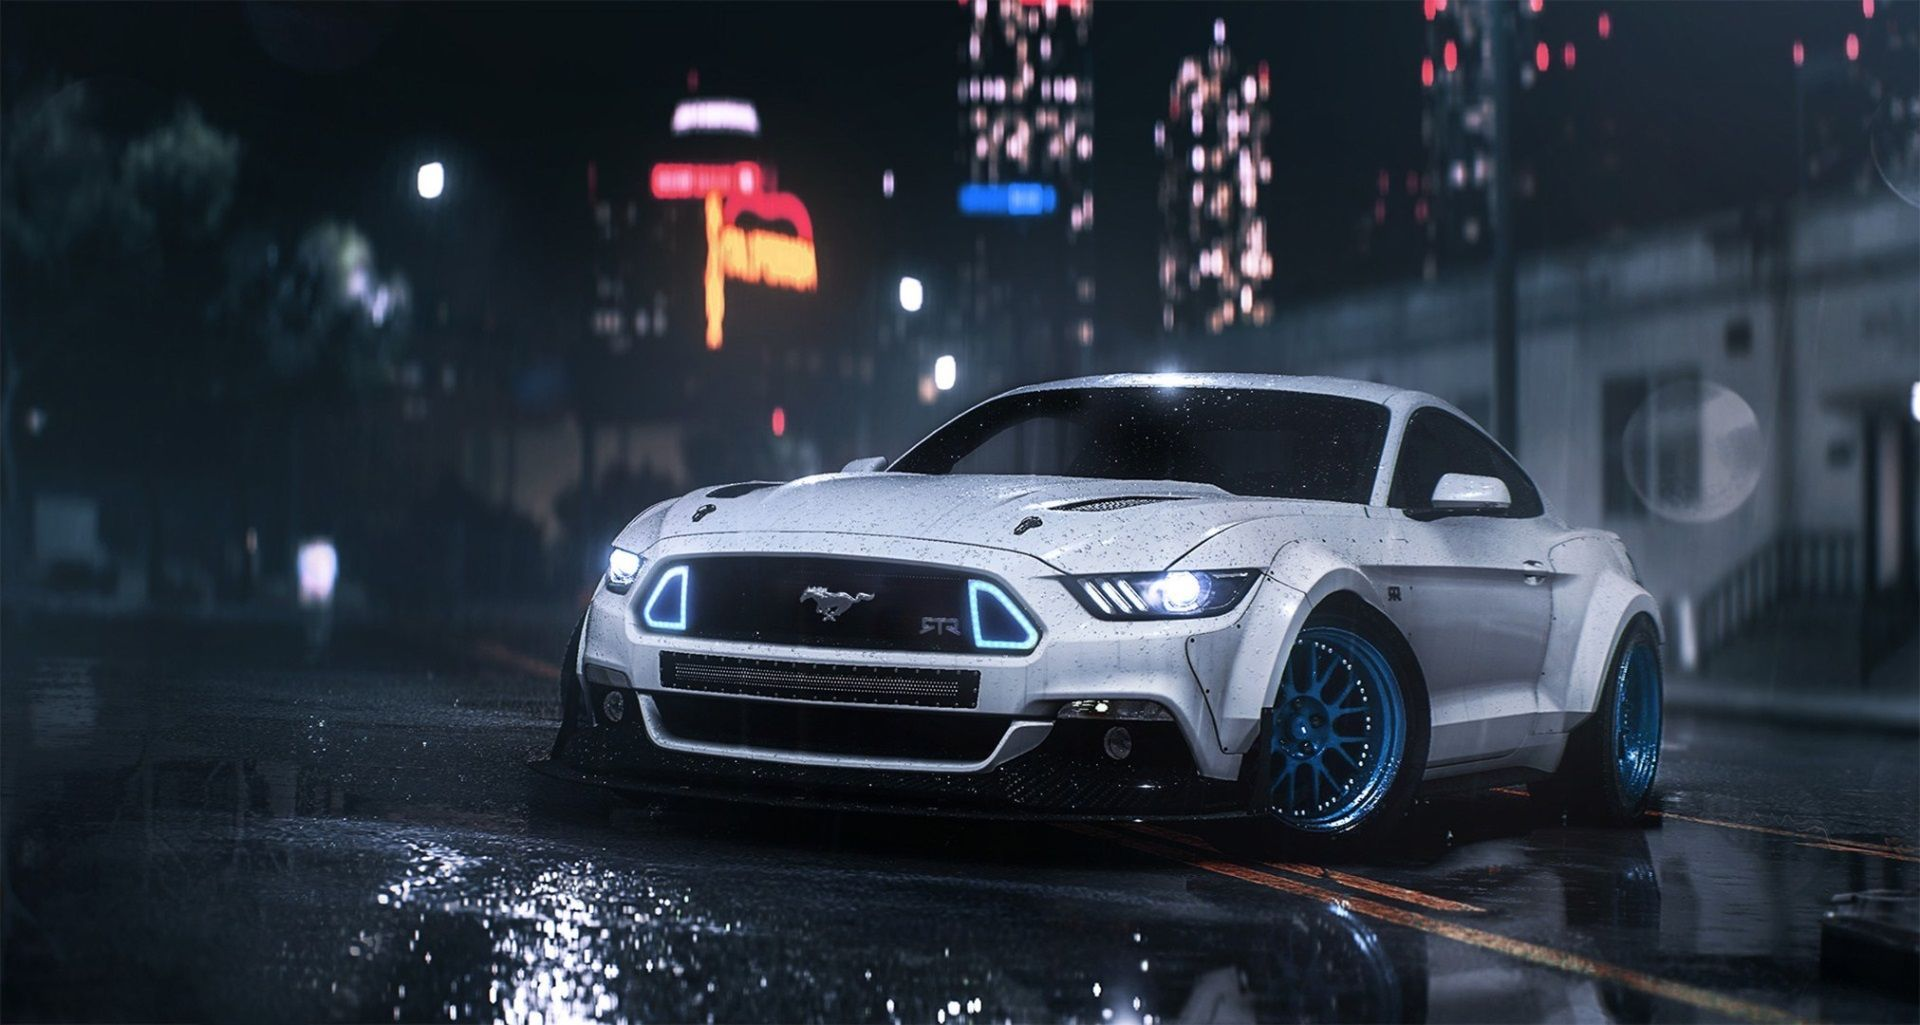 1920x1025 Need For Speed Cool Wallpaper For Desktop Mustang Wallpaper New Ford Mustang Ford Mustang Wallpaper